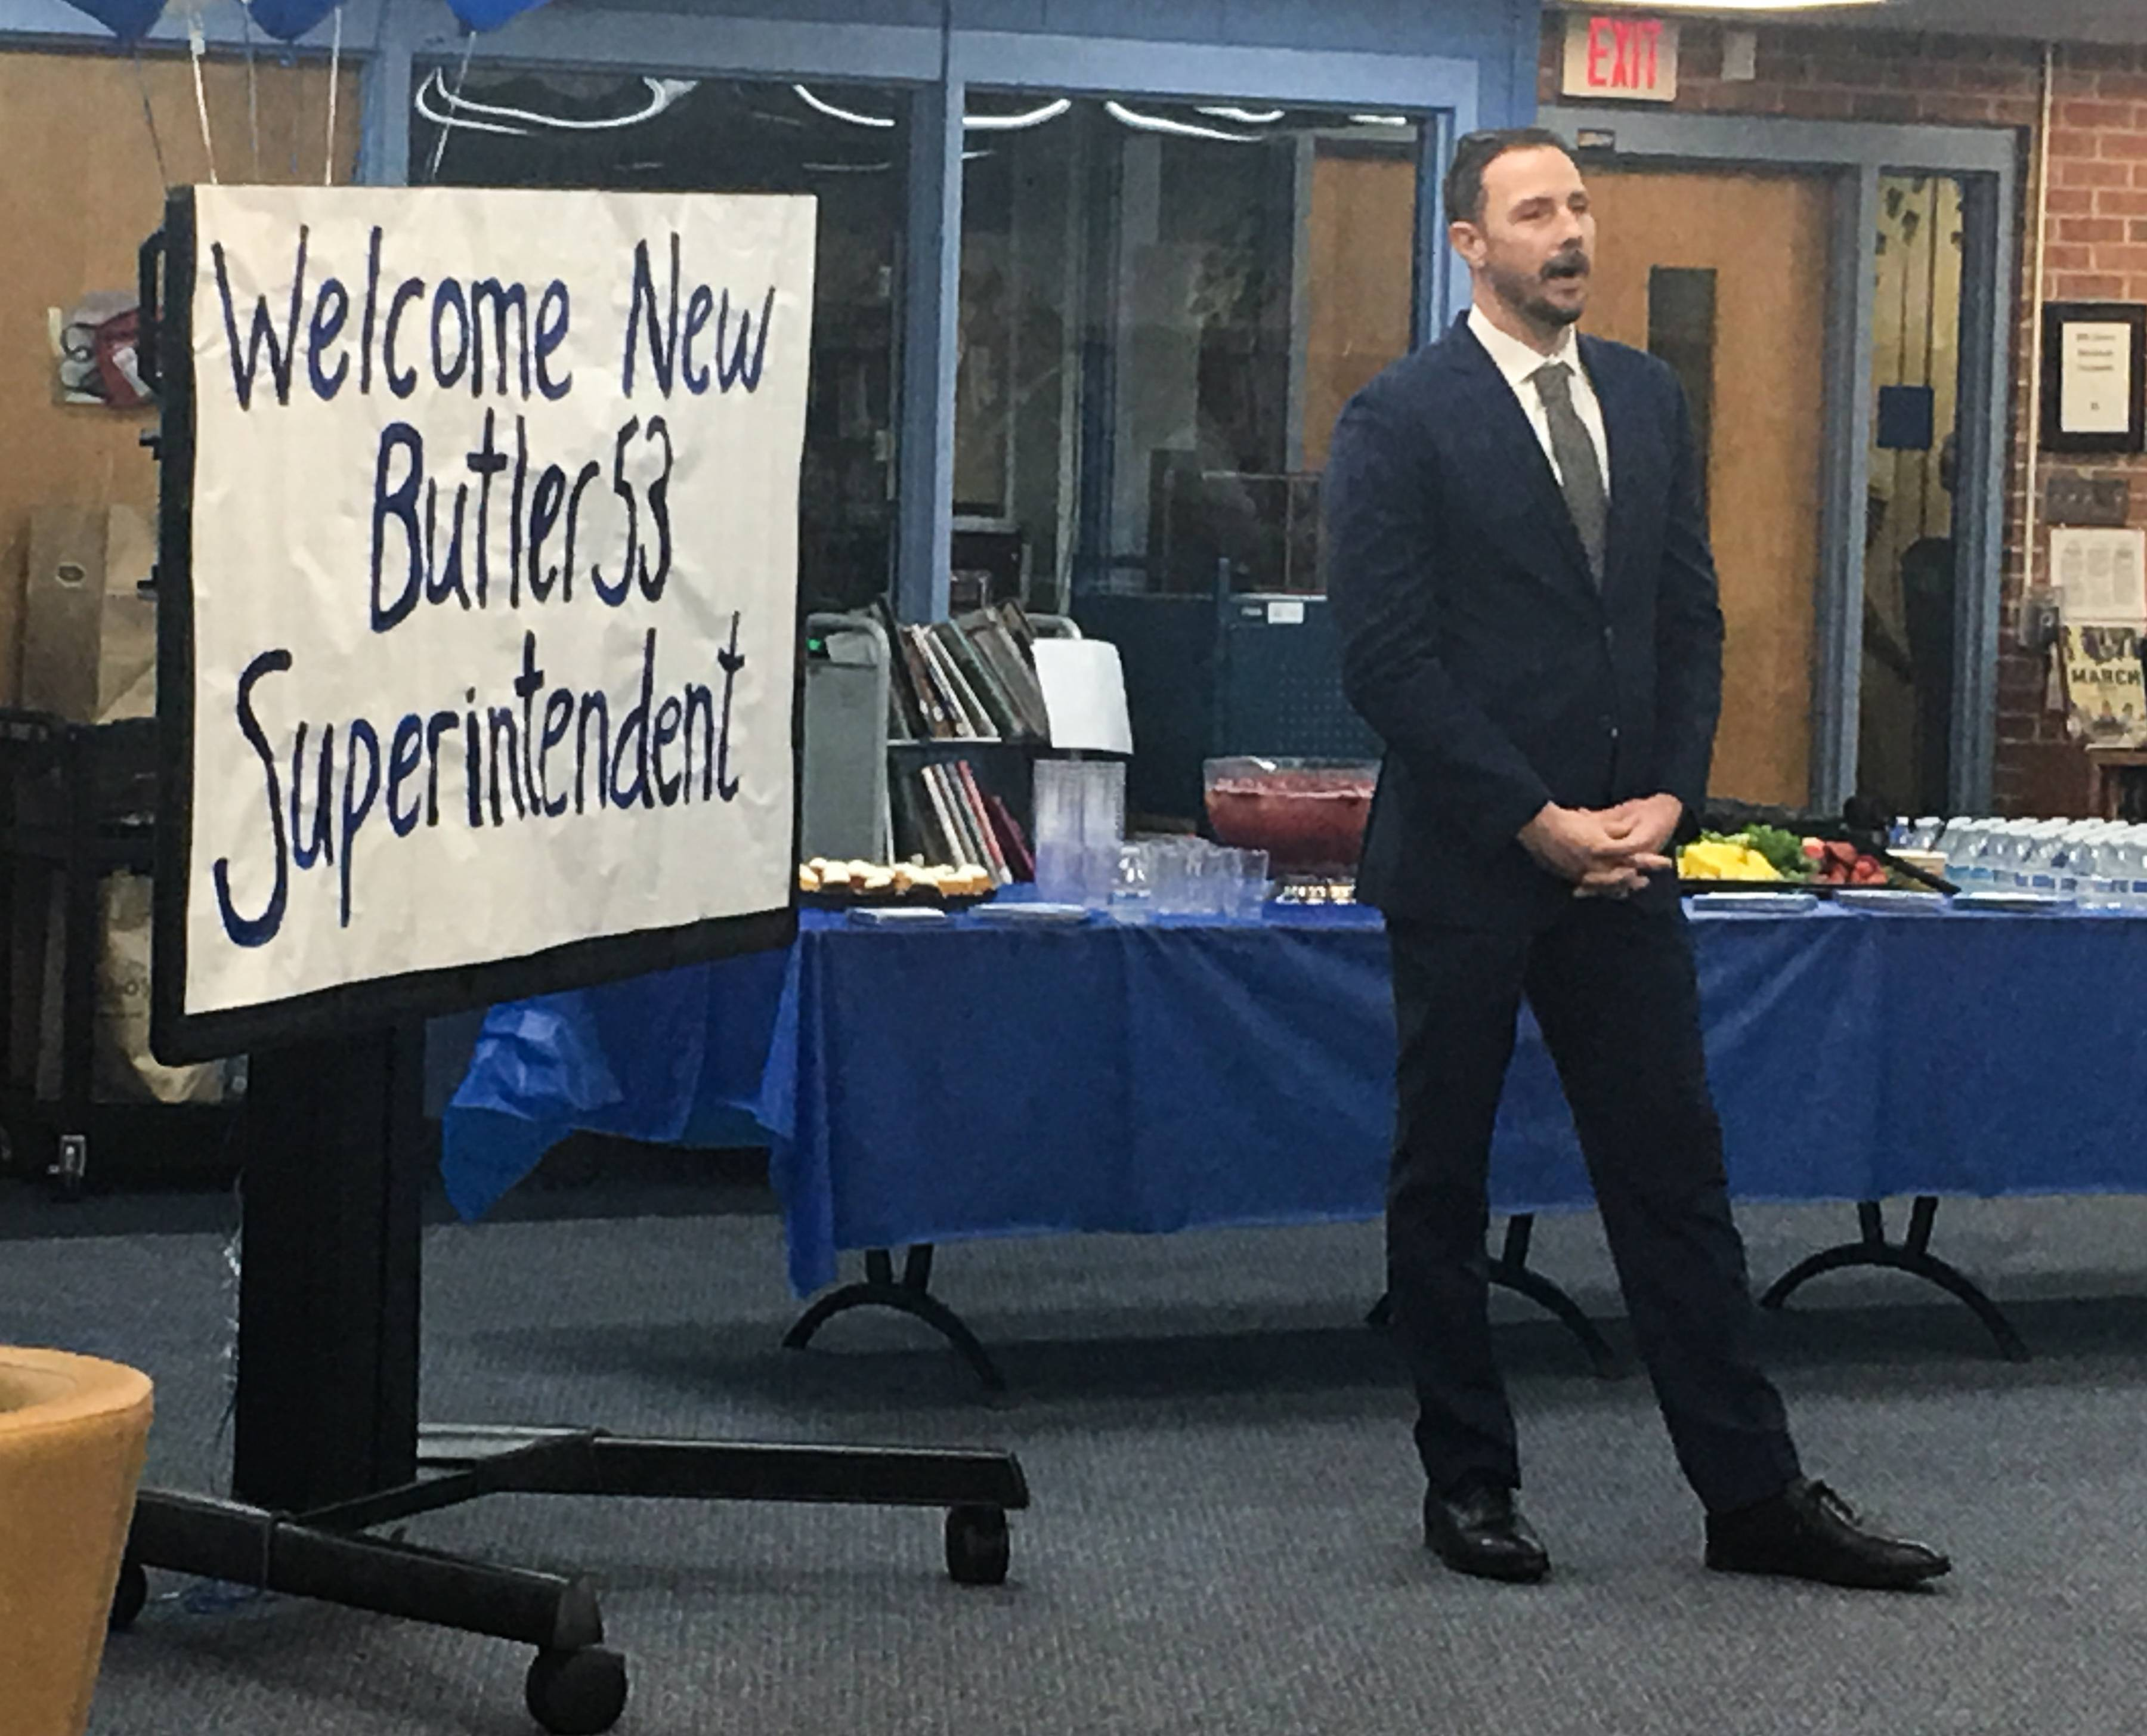 Veteran educator Paul O'Malley has been named superintendent of Butler Elementary District 53 in Oak Brook. He starts work July 1.